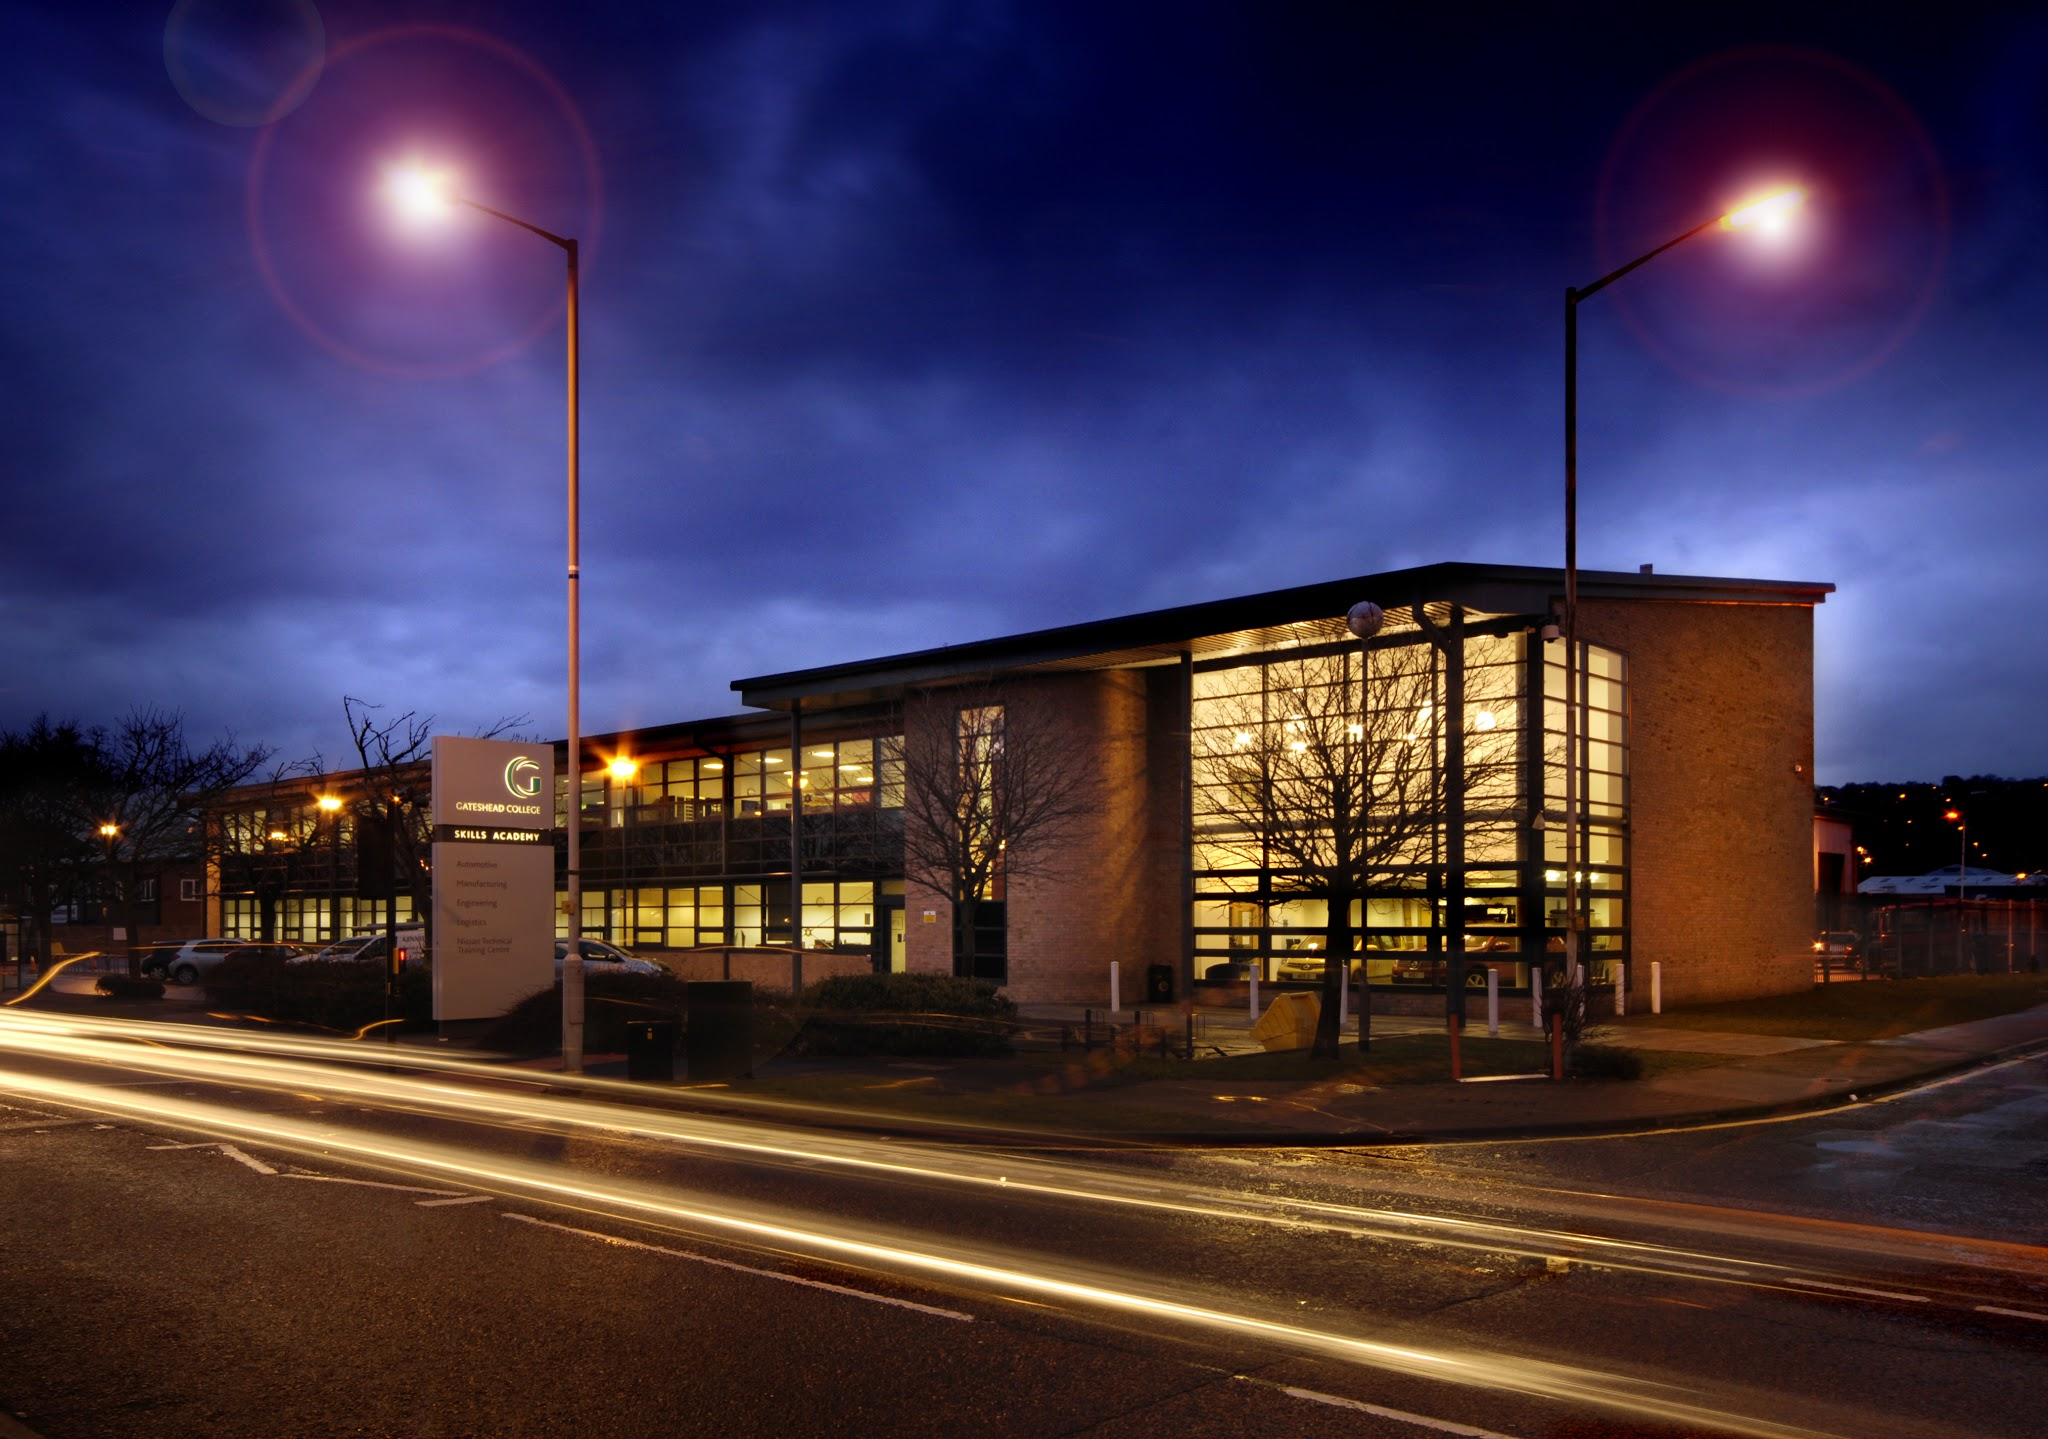 Gateshead College Skills Academy for Automotive, Engineering, Manufacturing And Logistics | 190 Kingsway South, Team Valley Trading Estate, Gateshead NE11 0SH | +44 191 490 2430